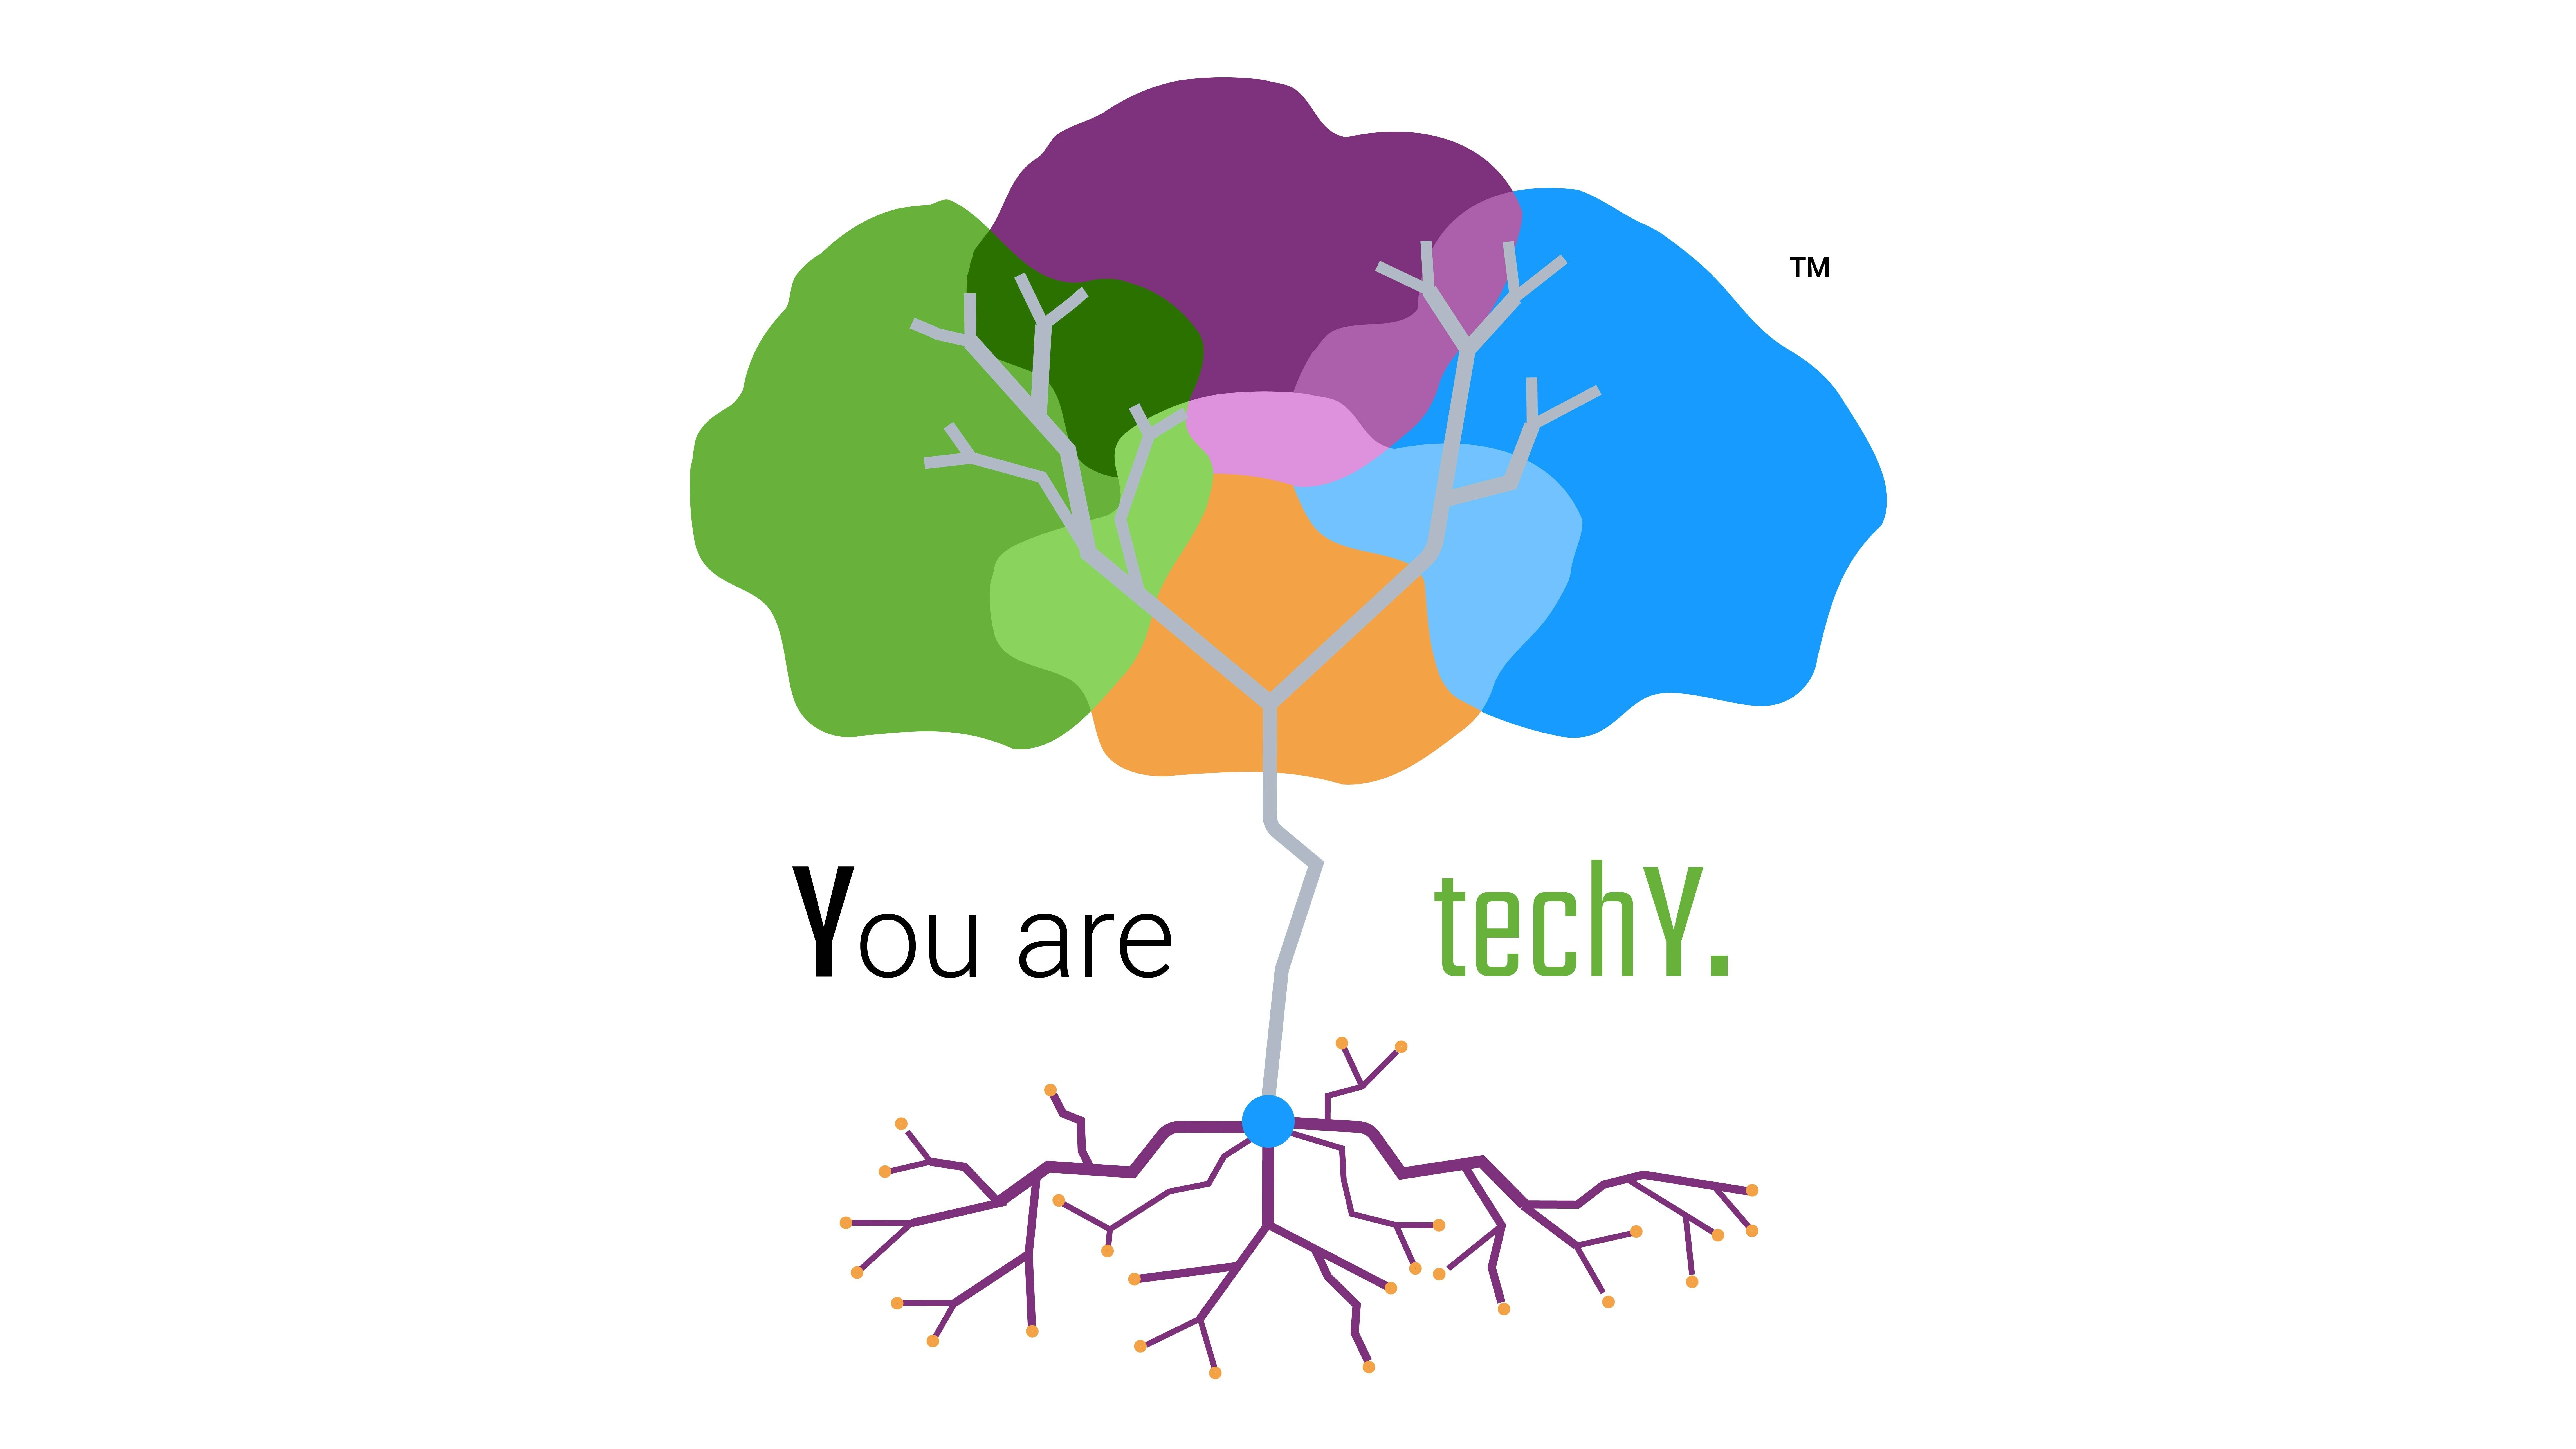 You are techY (formerly Learning, Design, and Tech Moms)